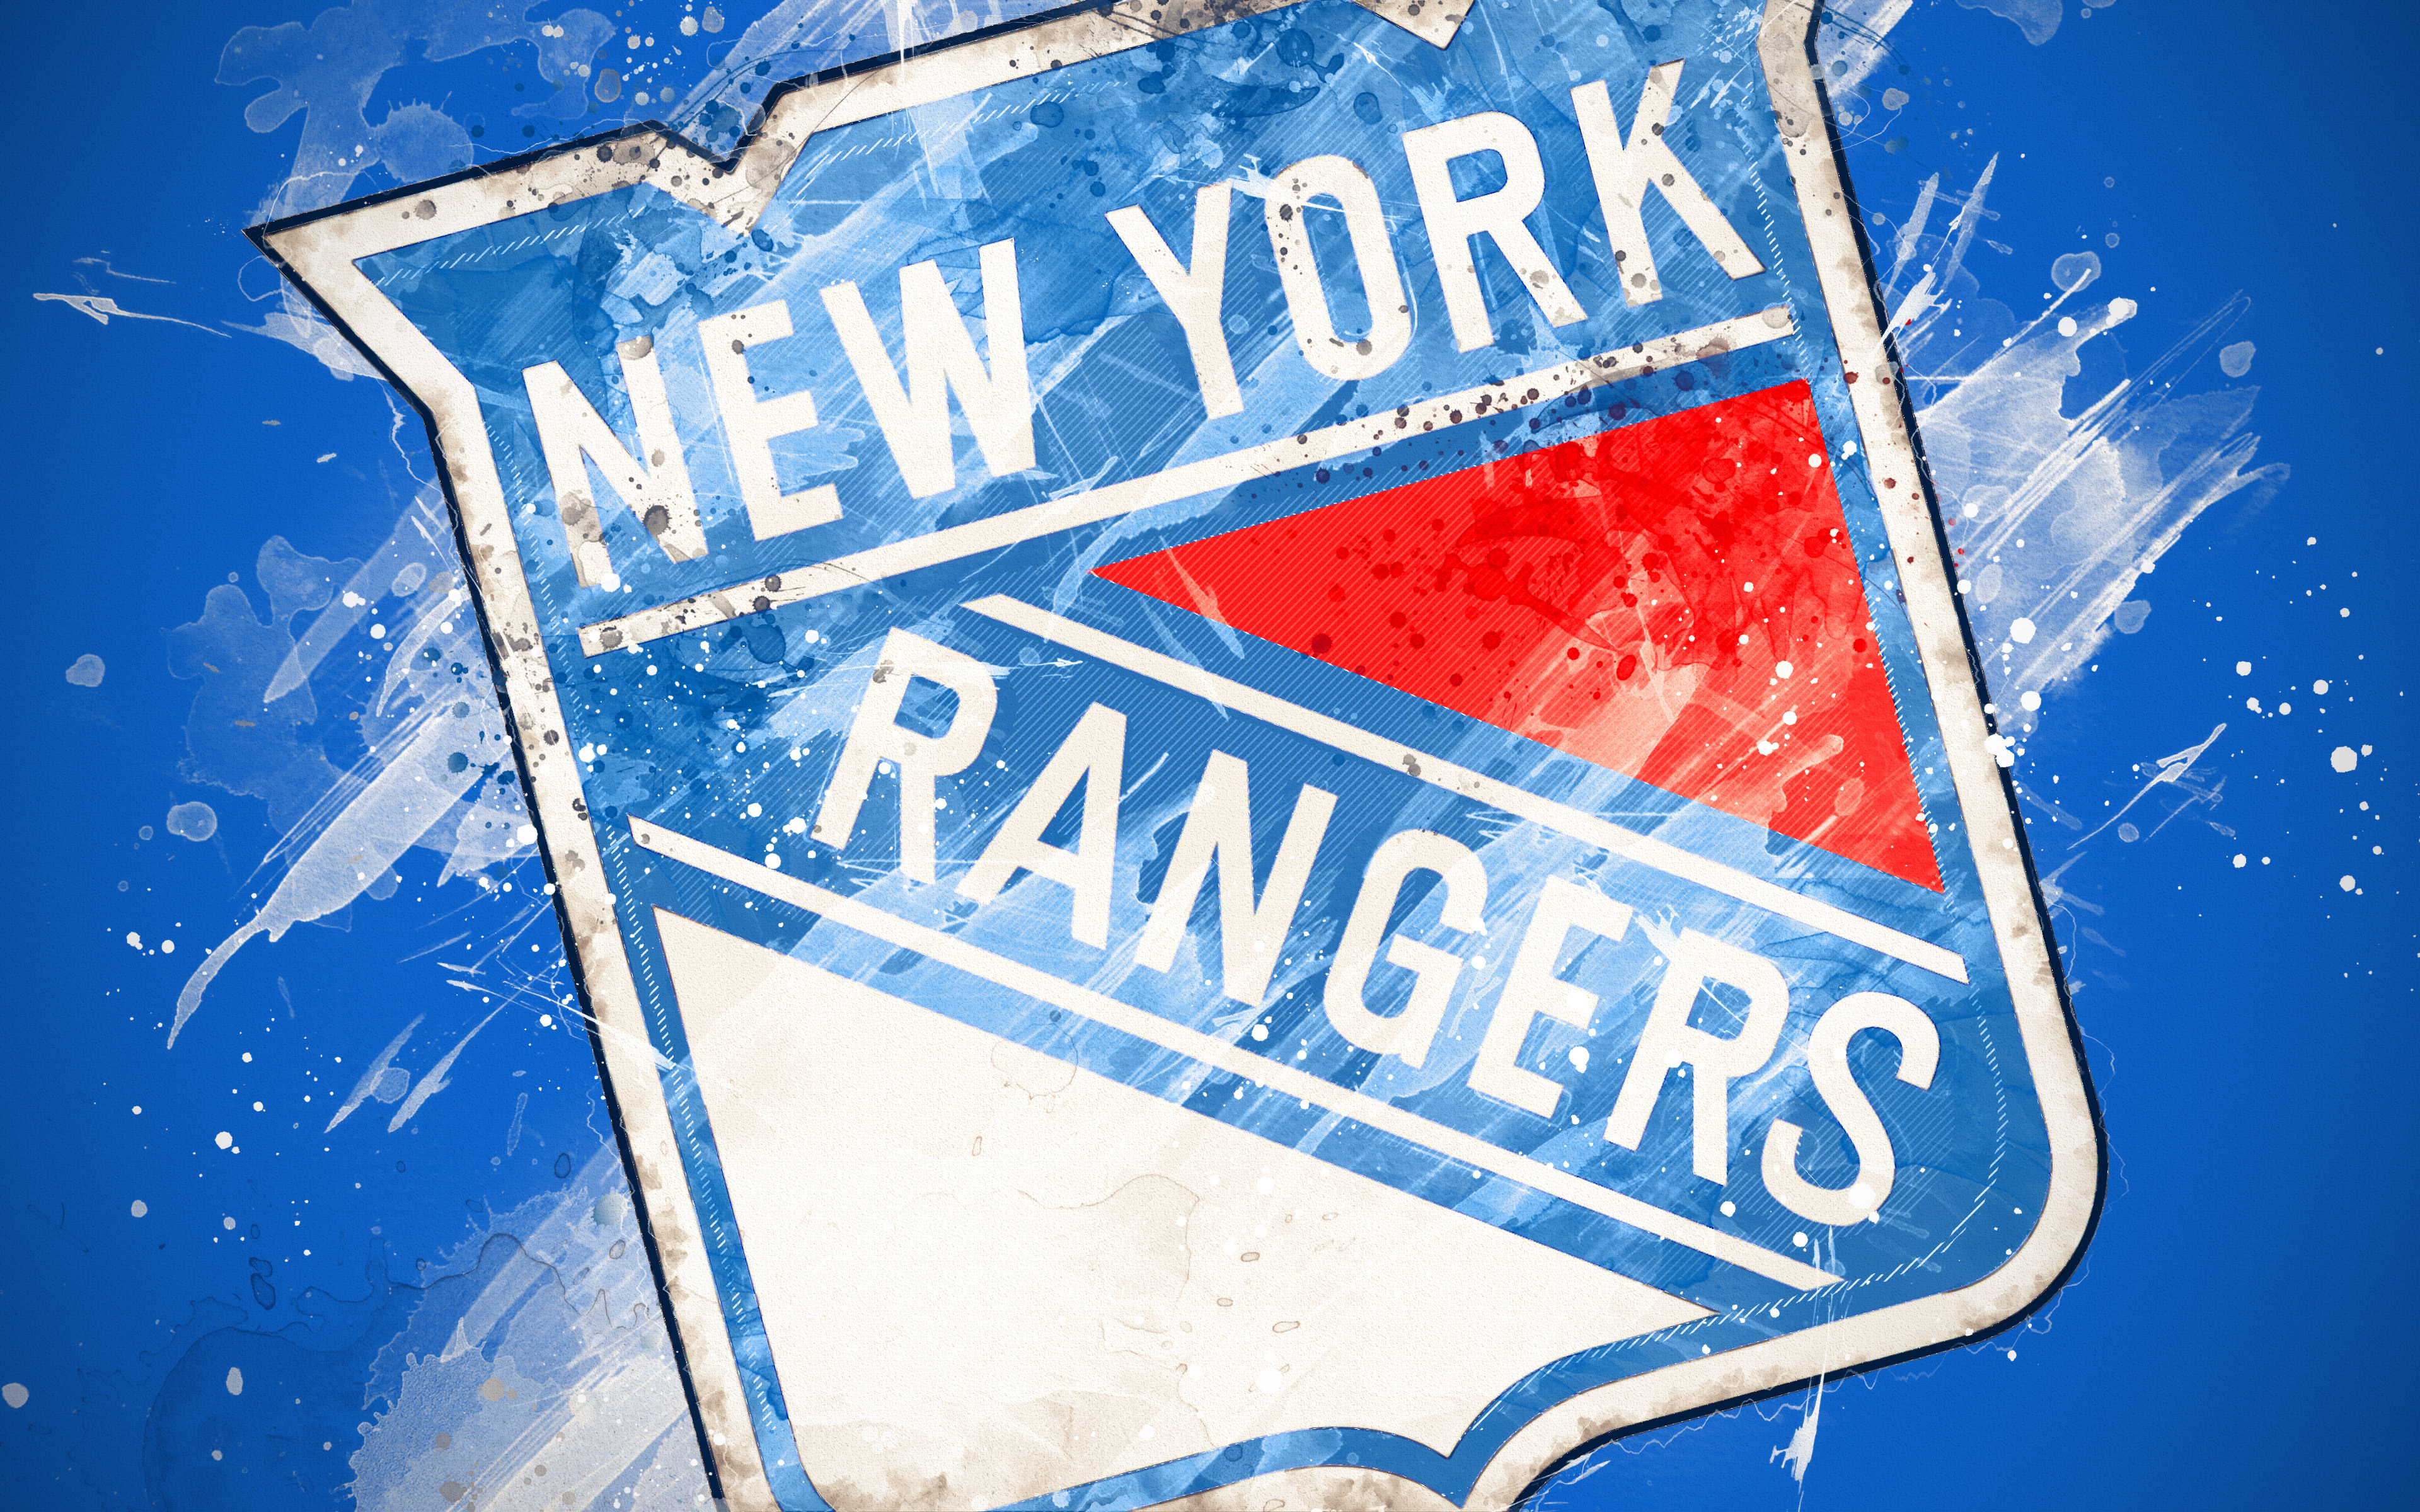 New York Rangers 4k Ultra Hd Wallpaper Background Image